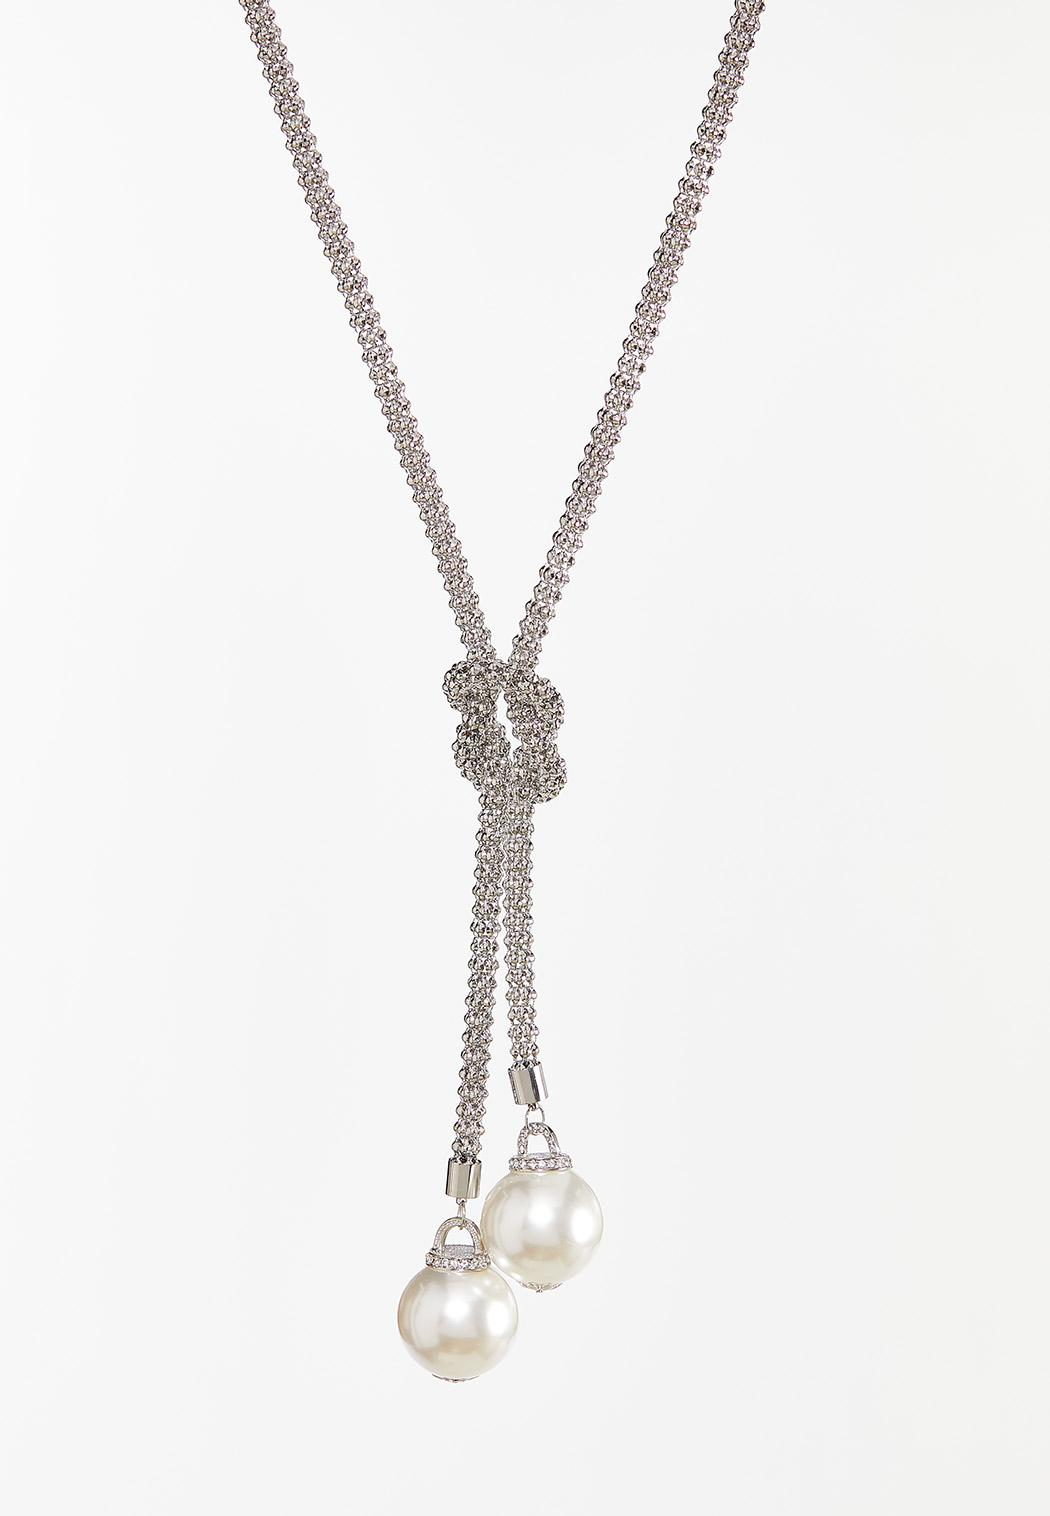 Knotted Pearl Lariat